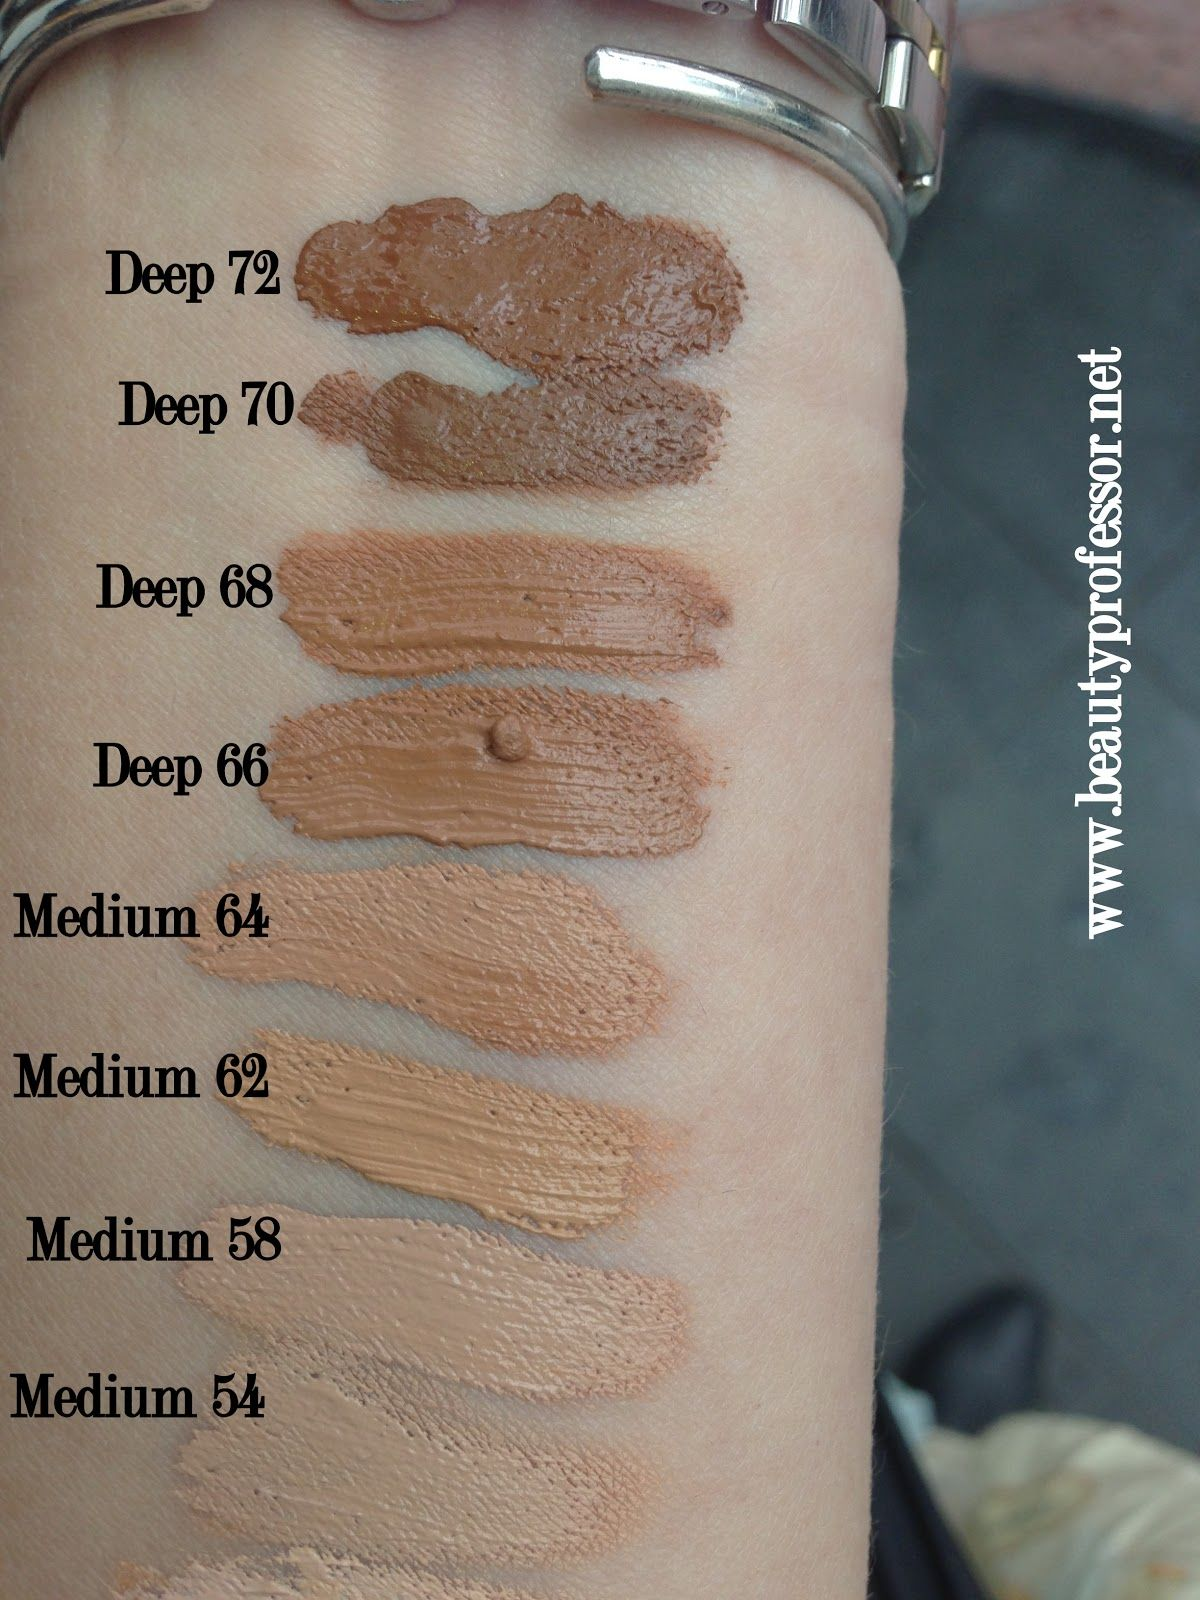 Kat Von D Lock It Tattoo Foundation Swatches Of All Shades Tattoo Foundation Lock It Tattoo Foundation Kat Von D